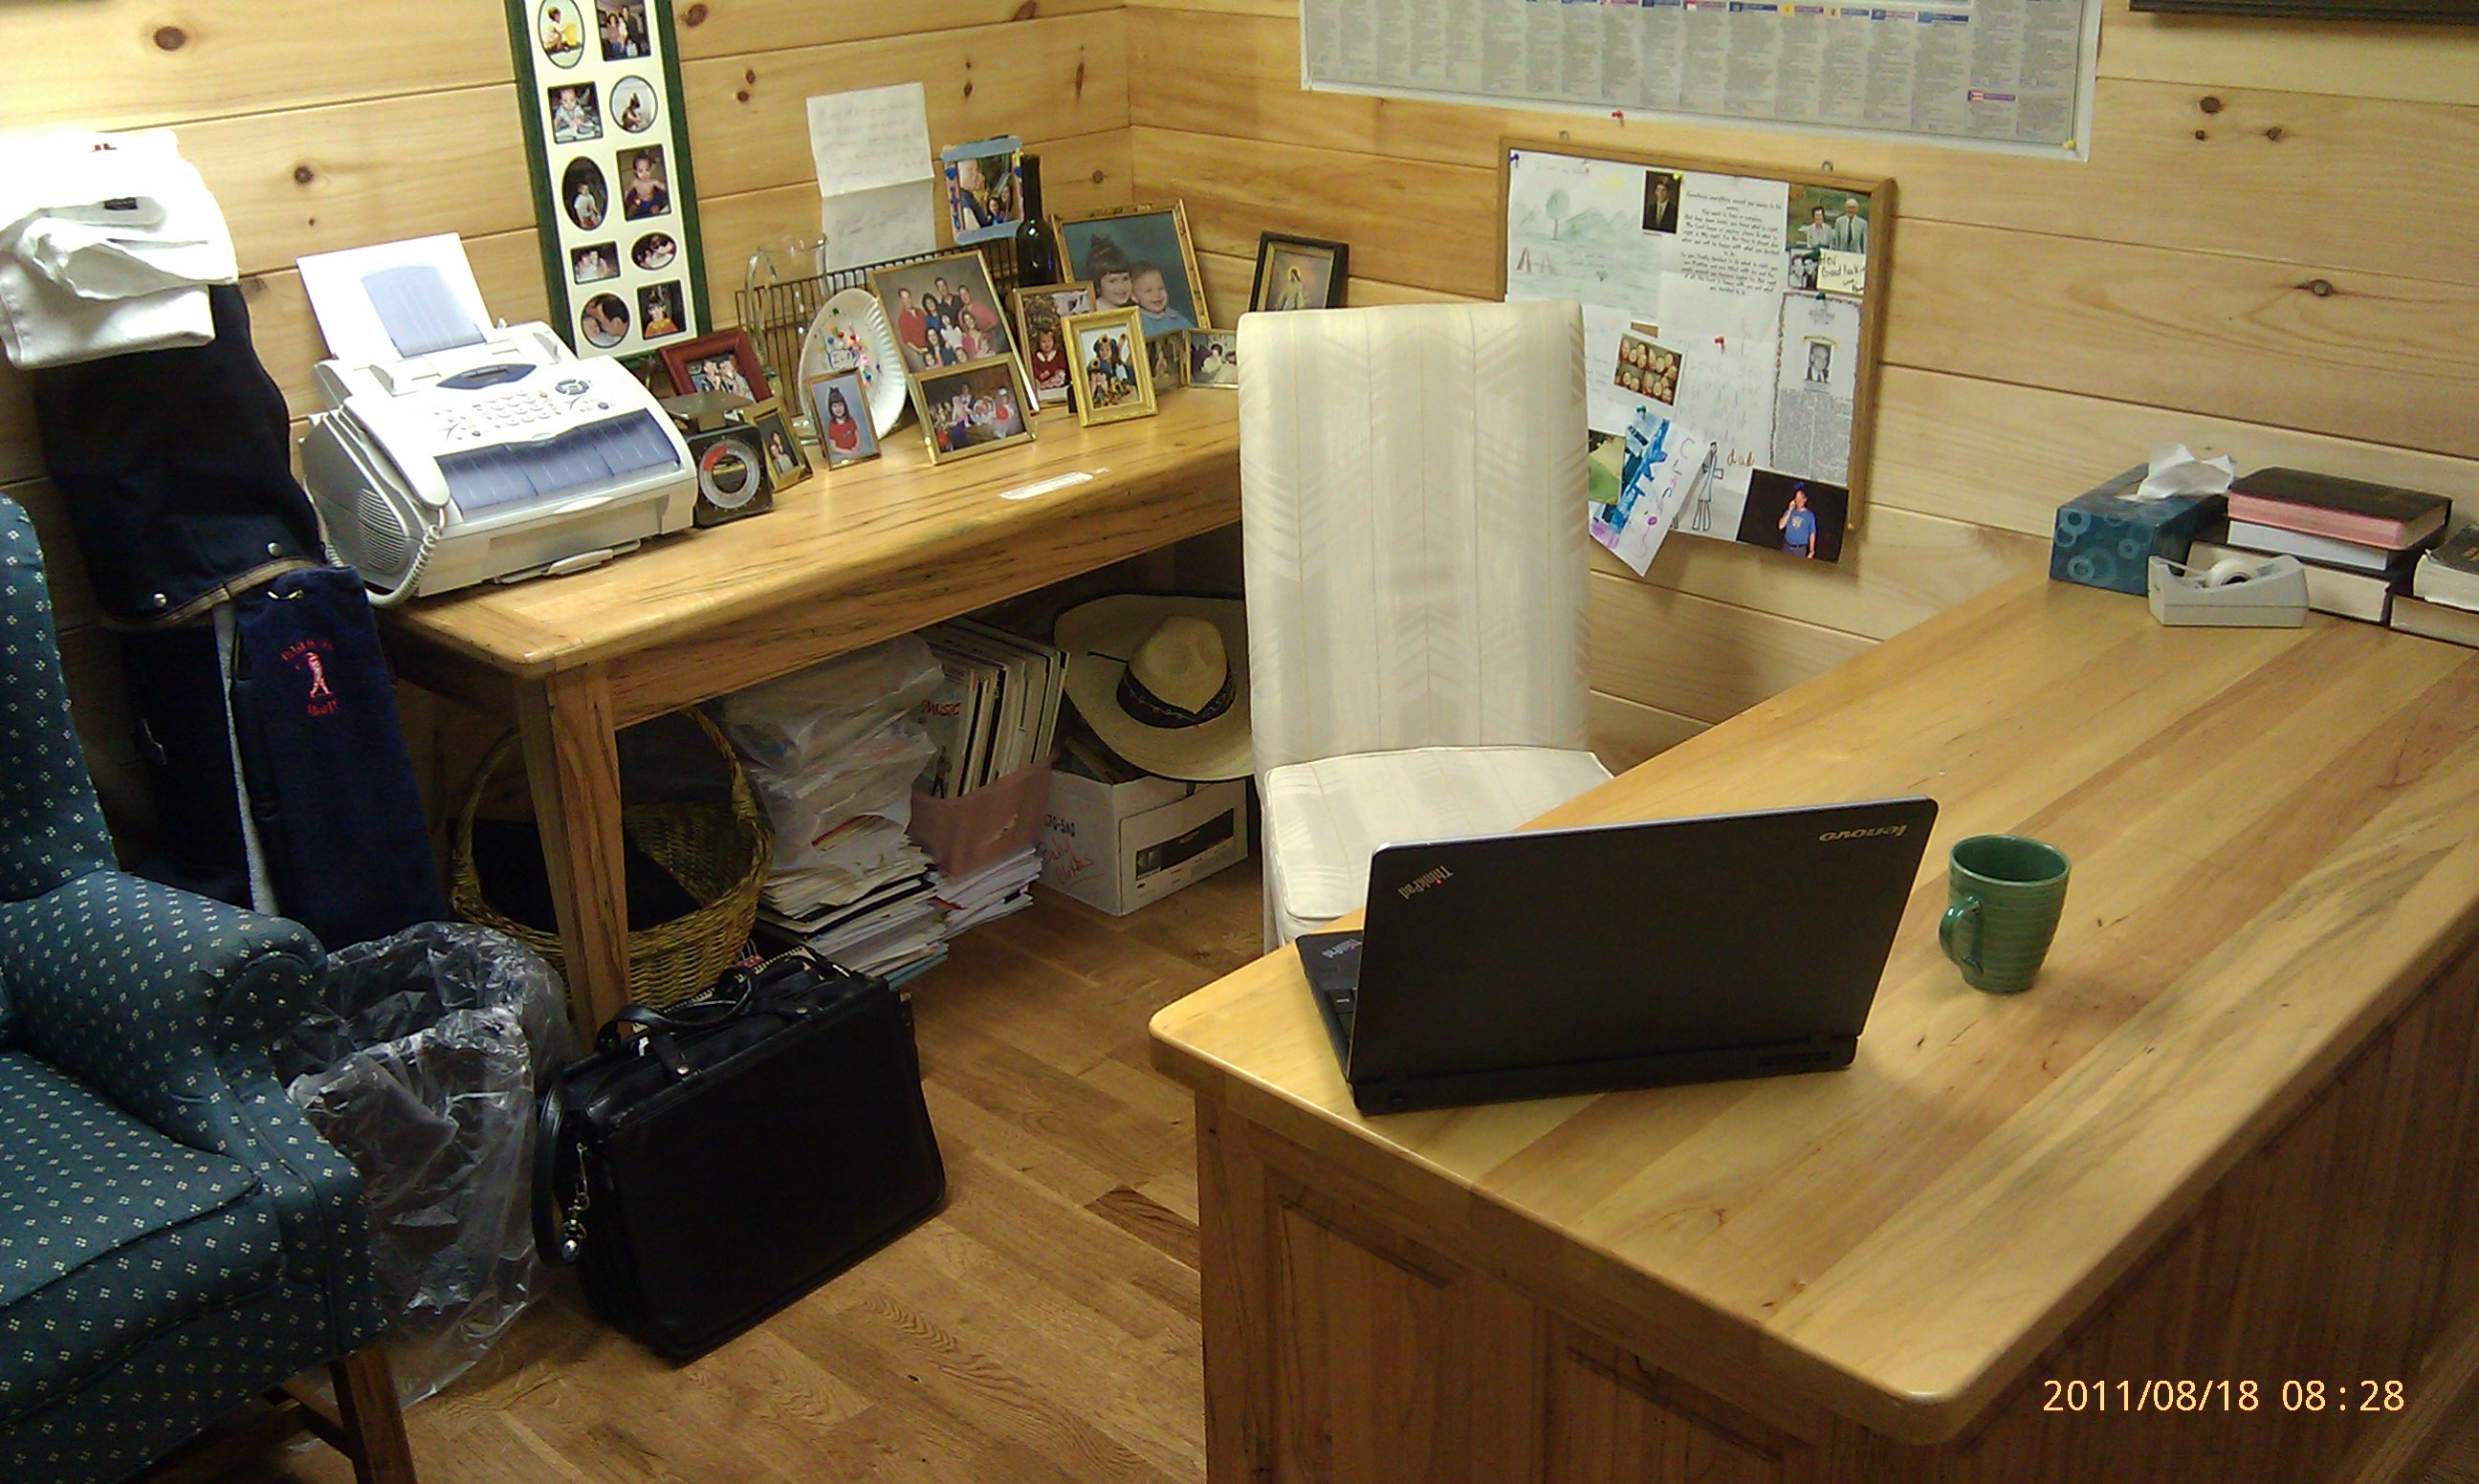 Why Did The Writer Enjoy Living In A Basement : The Lighter Side  D Kevin Brown's Blog